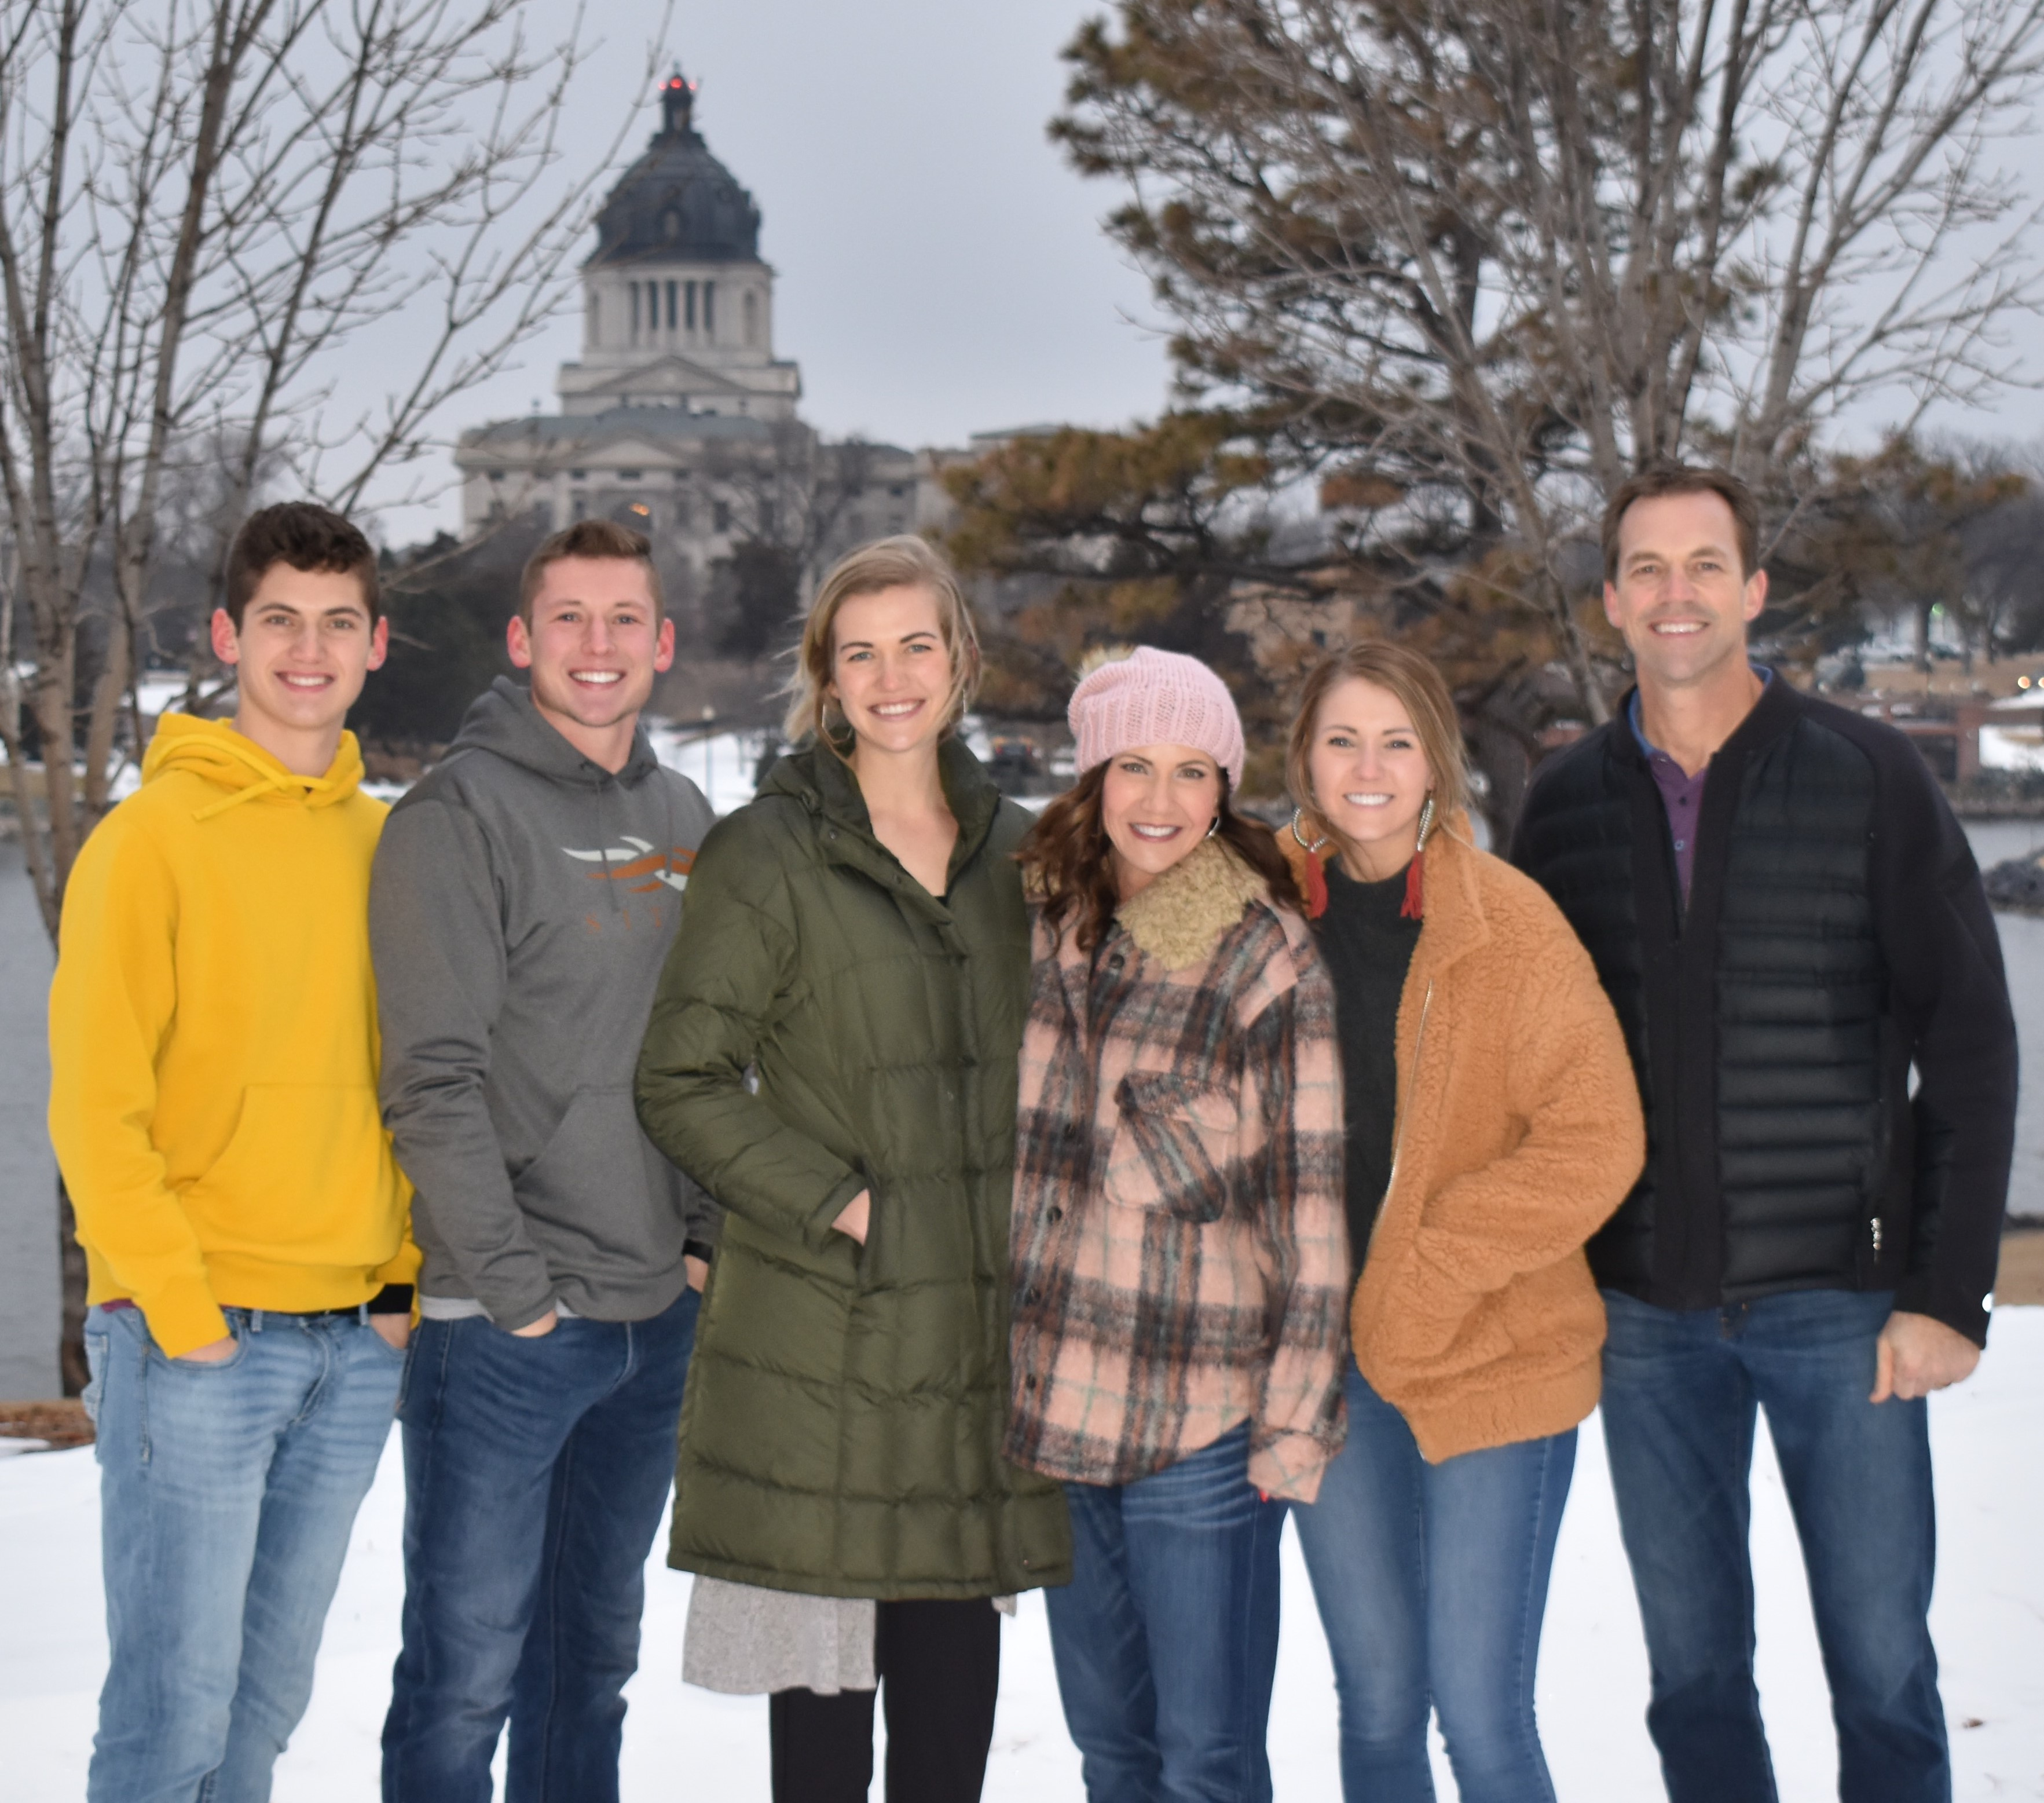 Governor Kristi Noem and family outside with Capitol dome in the background.